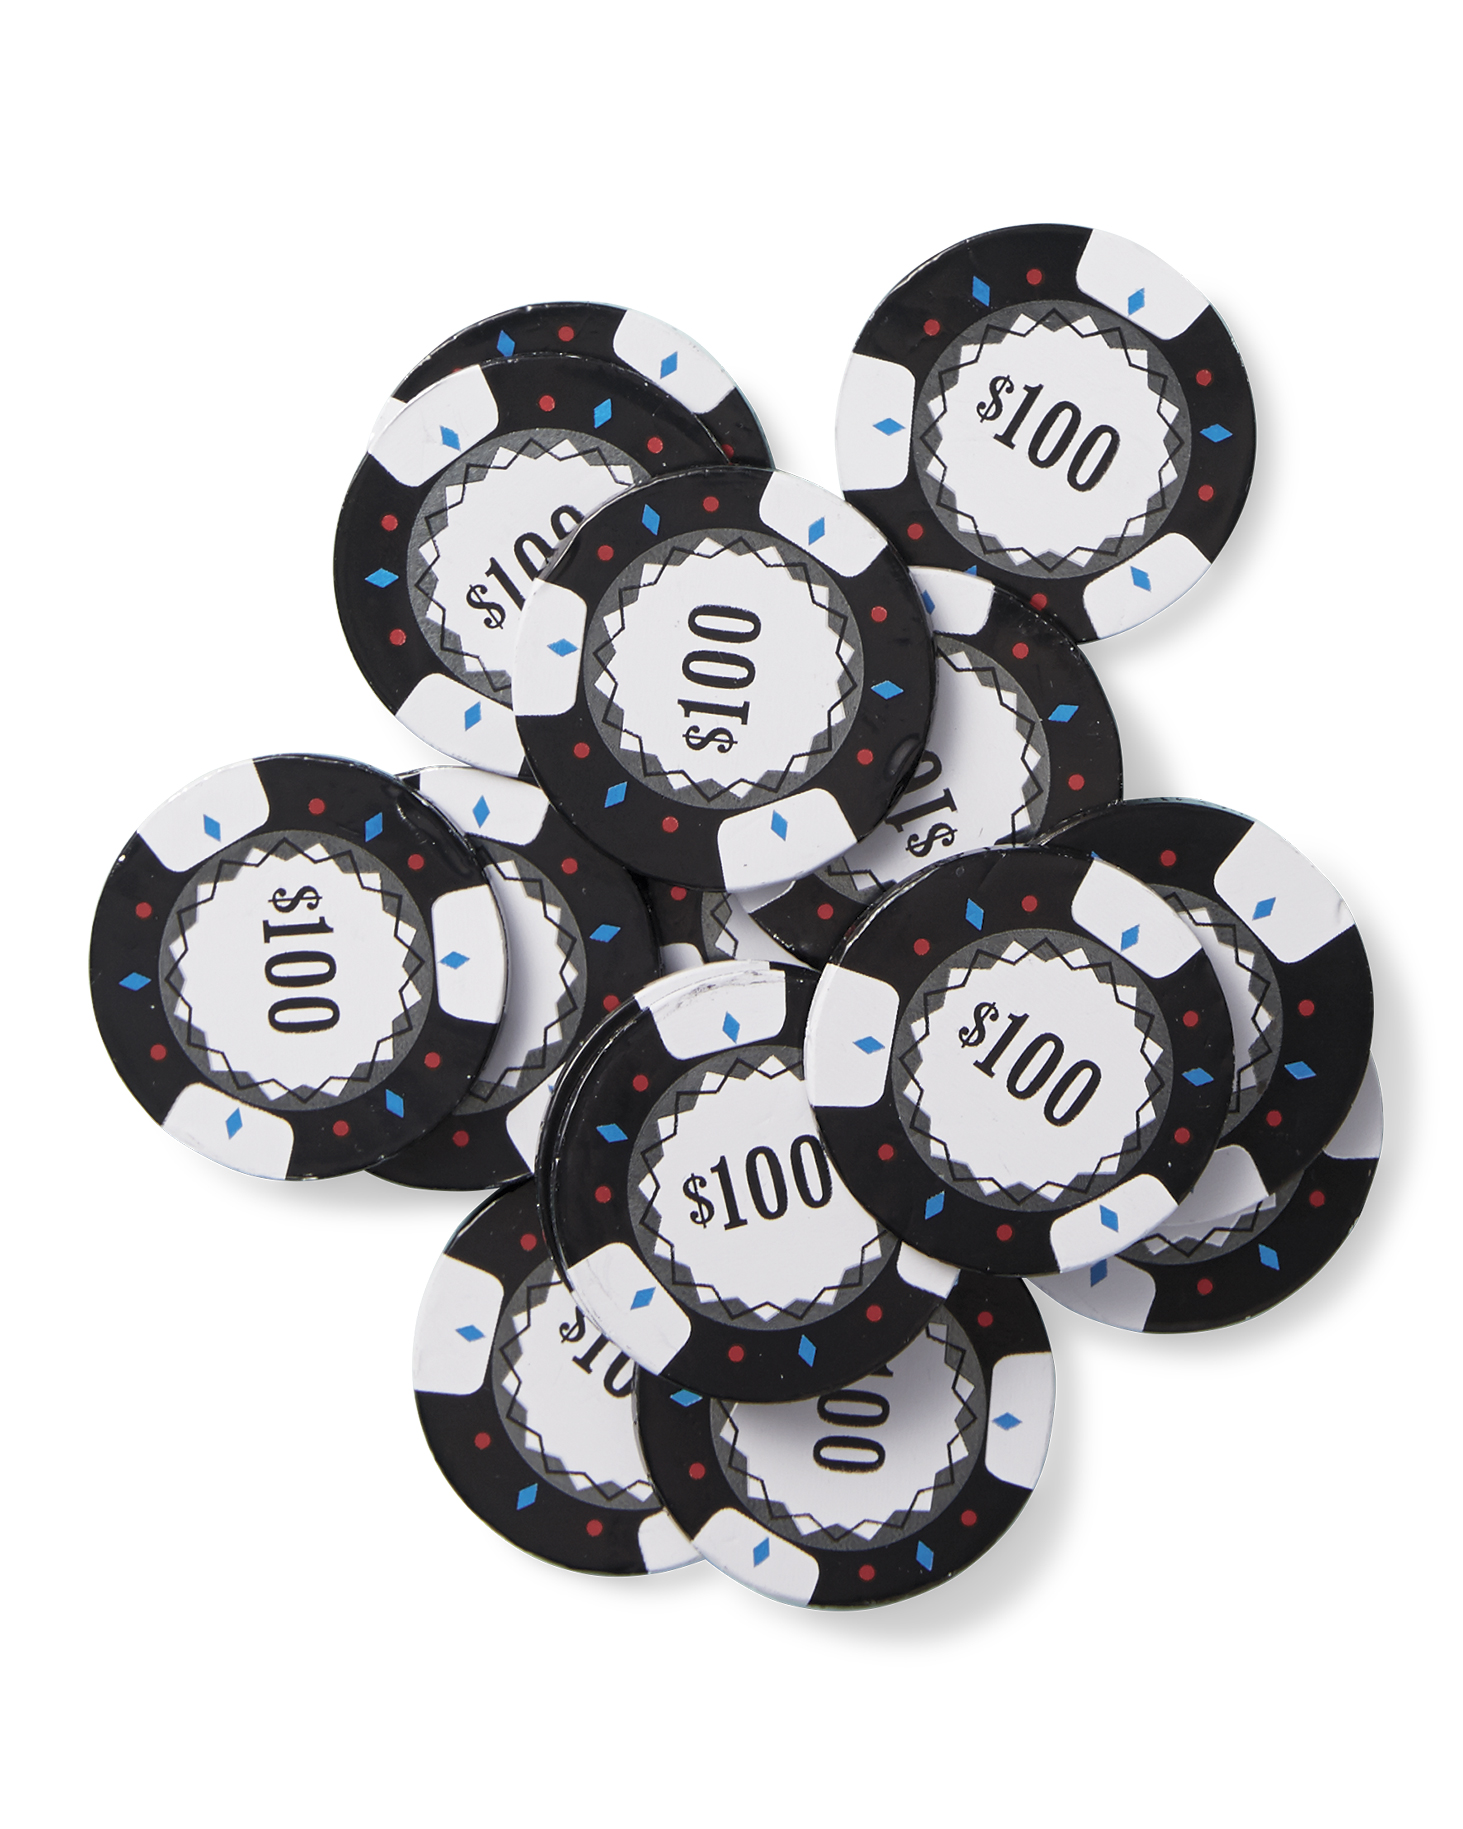 nevada-nv-poker-chips-151-d111965.jpg